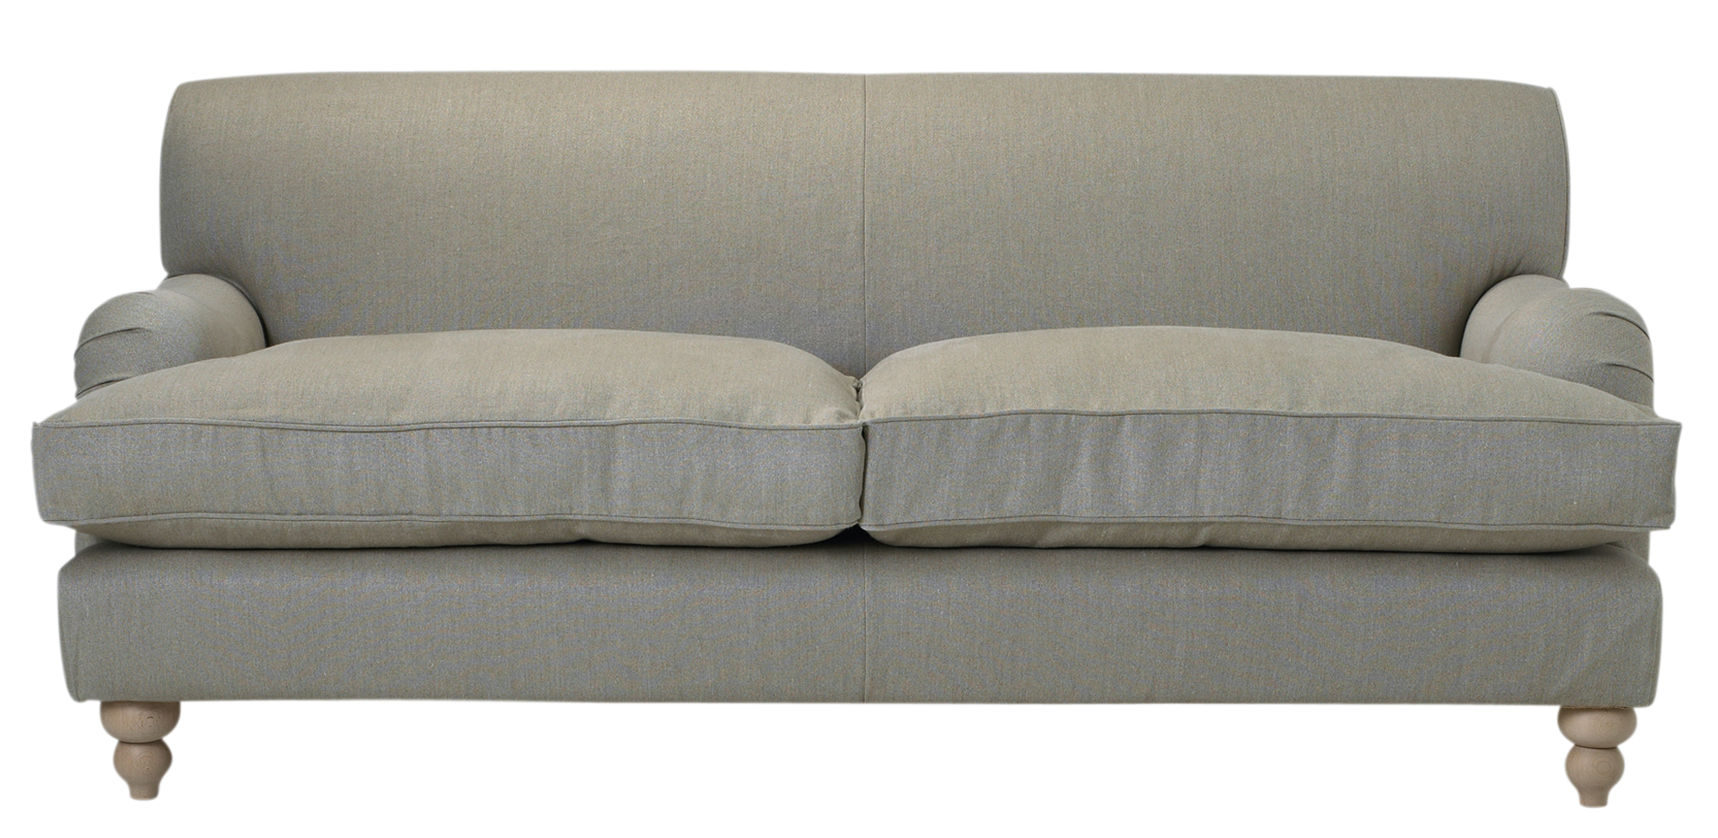 Sofa image purepng free. Couch png clip